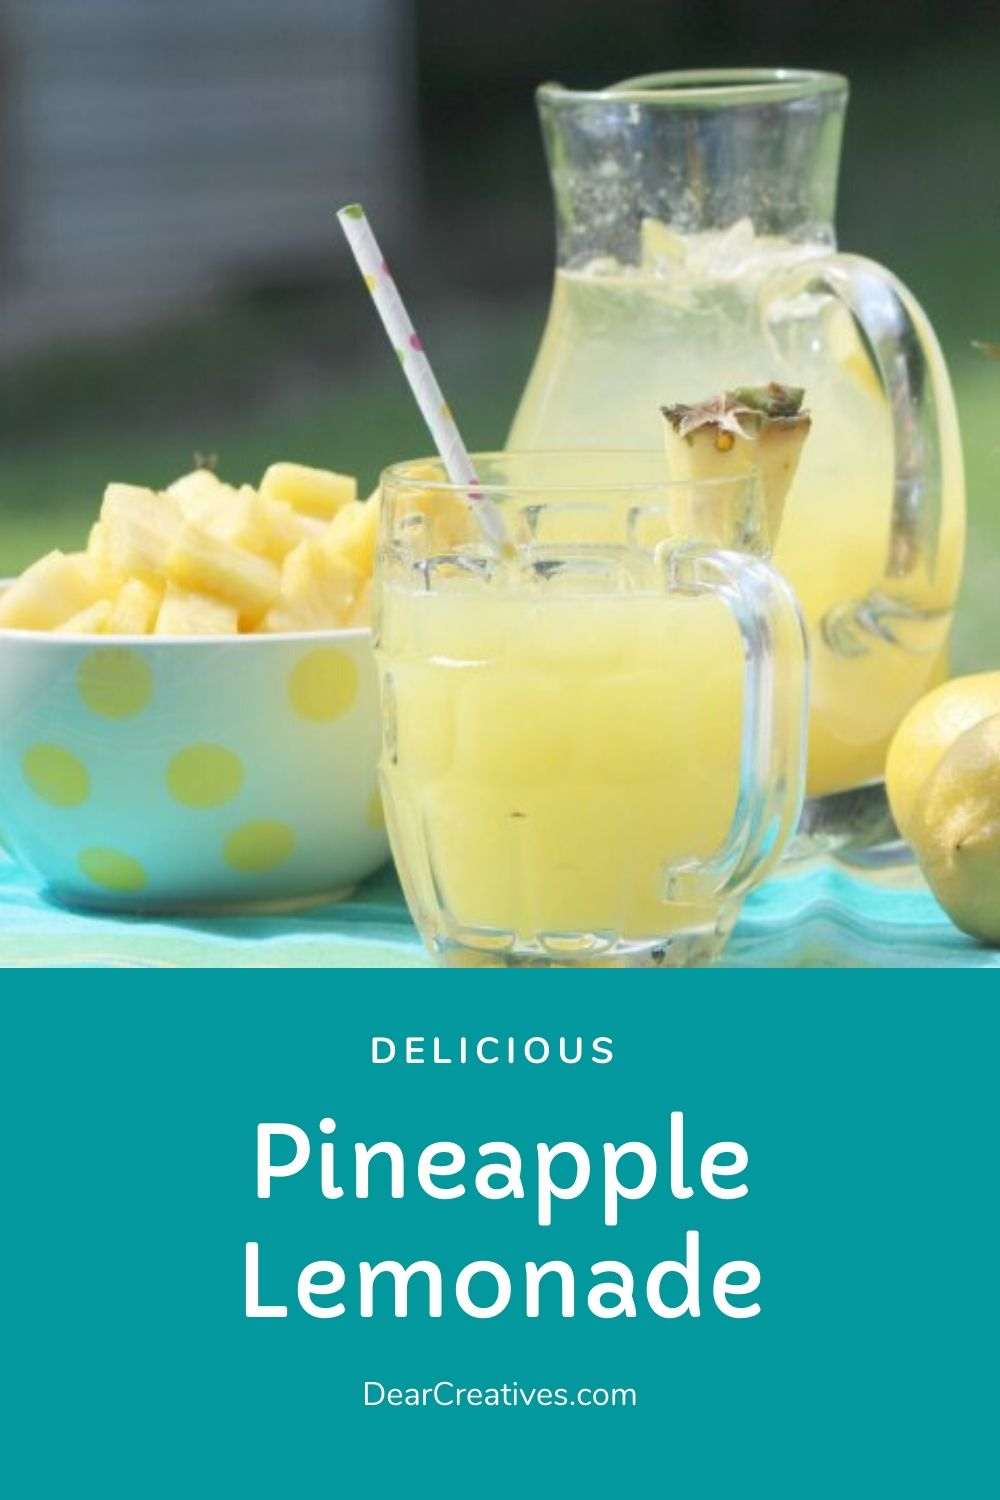 Pineapple Lemonade – Perfect For Showers, Parties or Just Sipping